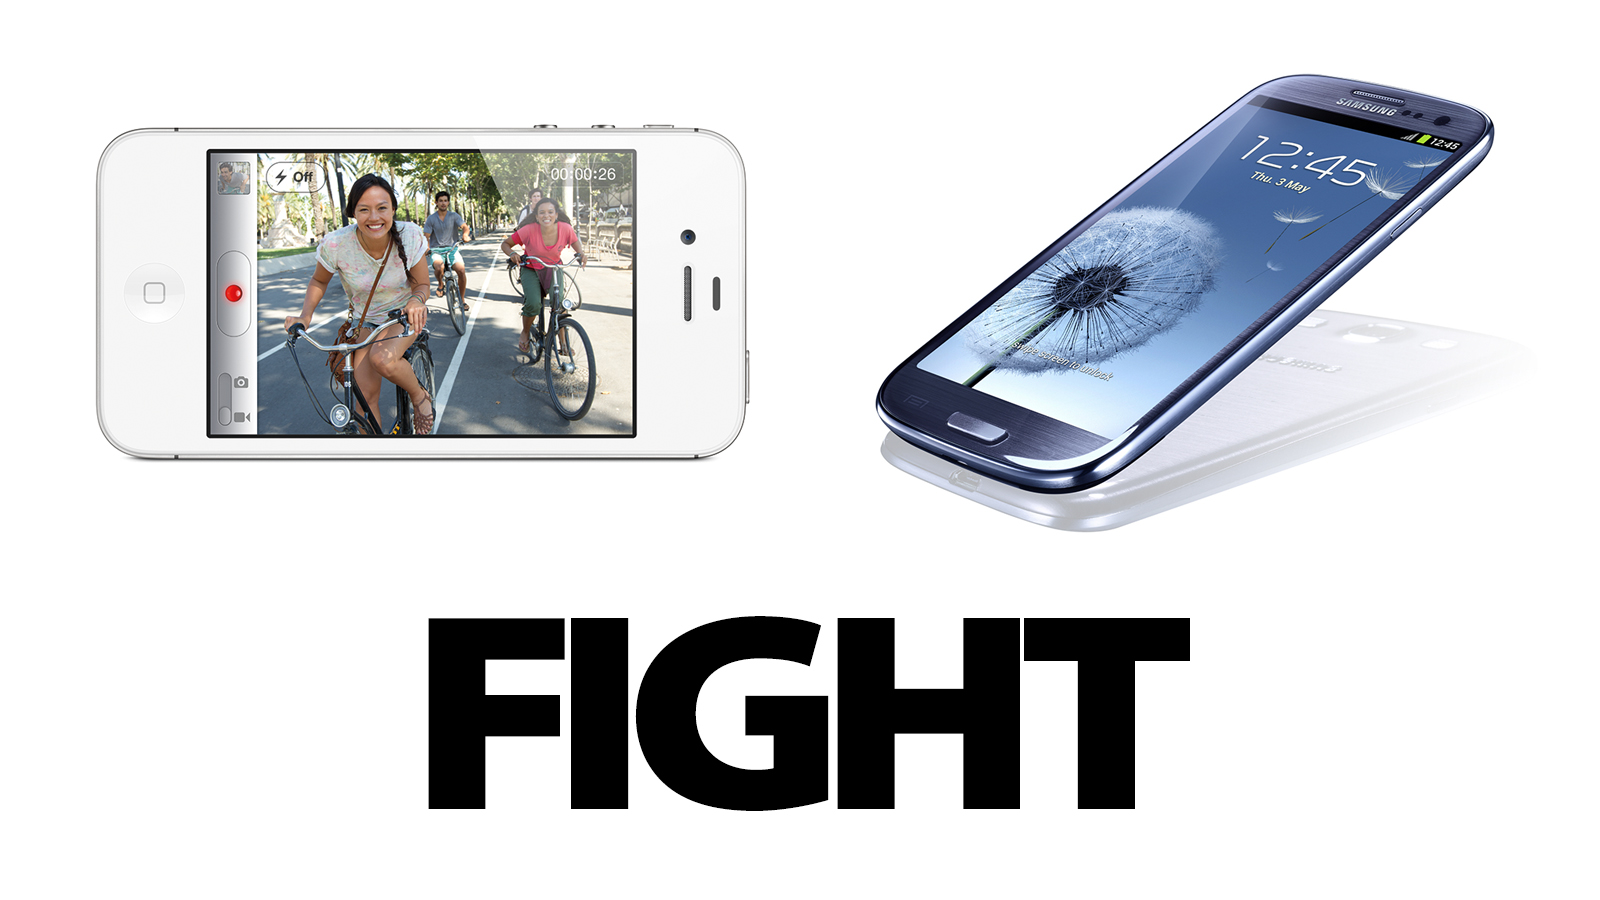 Click here to read Faceoff: Samsung Galaxy S III v. iPhone 4S